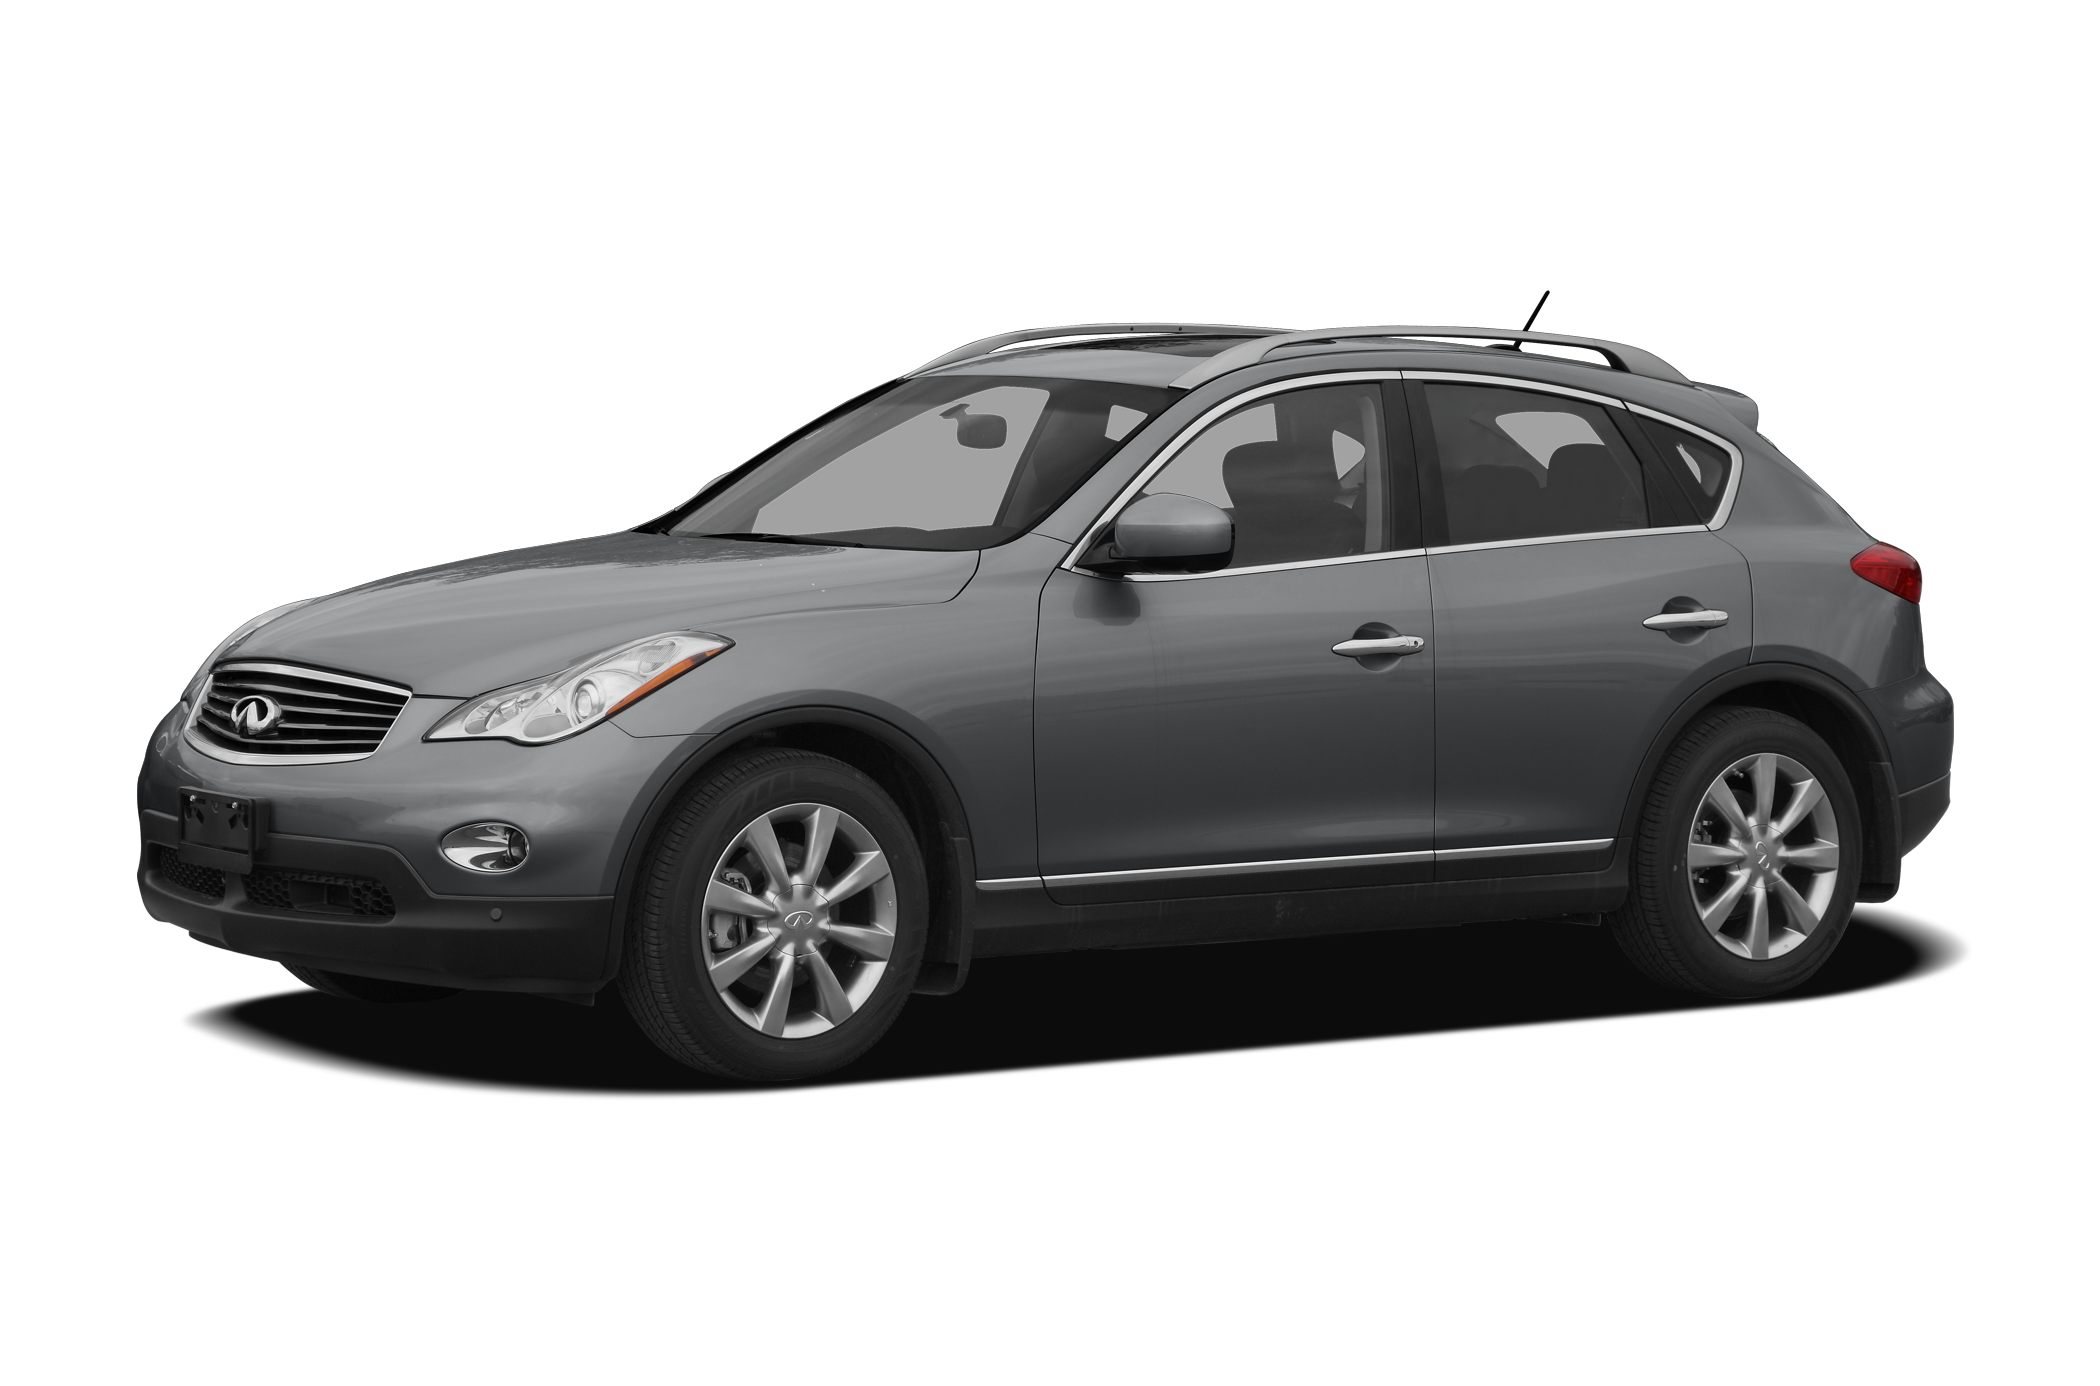 2009 Infiniti EX35  As much as it alters the road this lush 2009 Infiniti EX35 transforms its drive